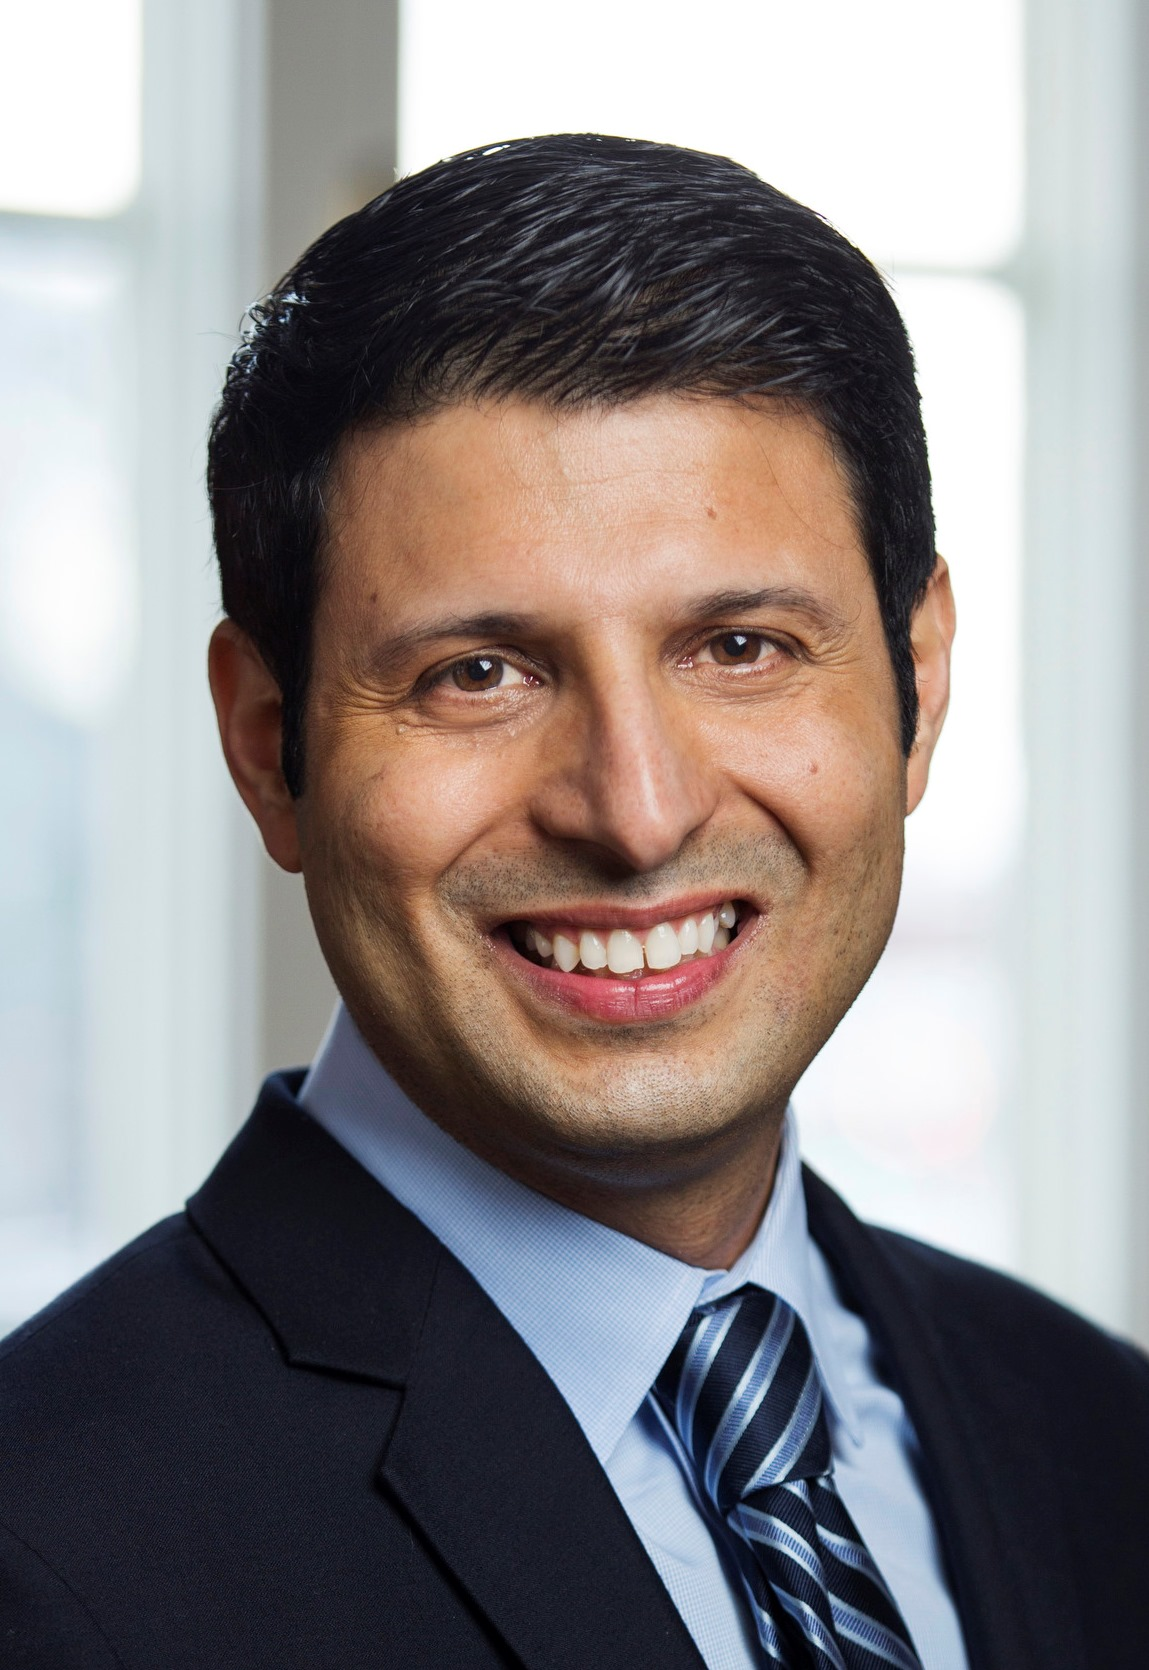 Sarosh Mistry CEO, Region Chair for North America